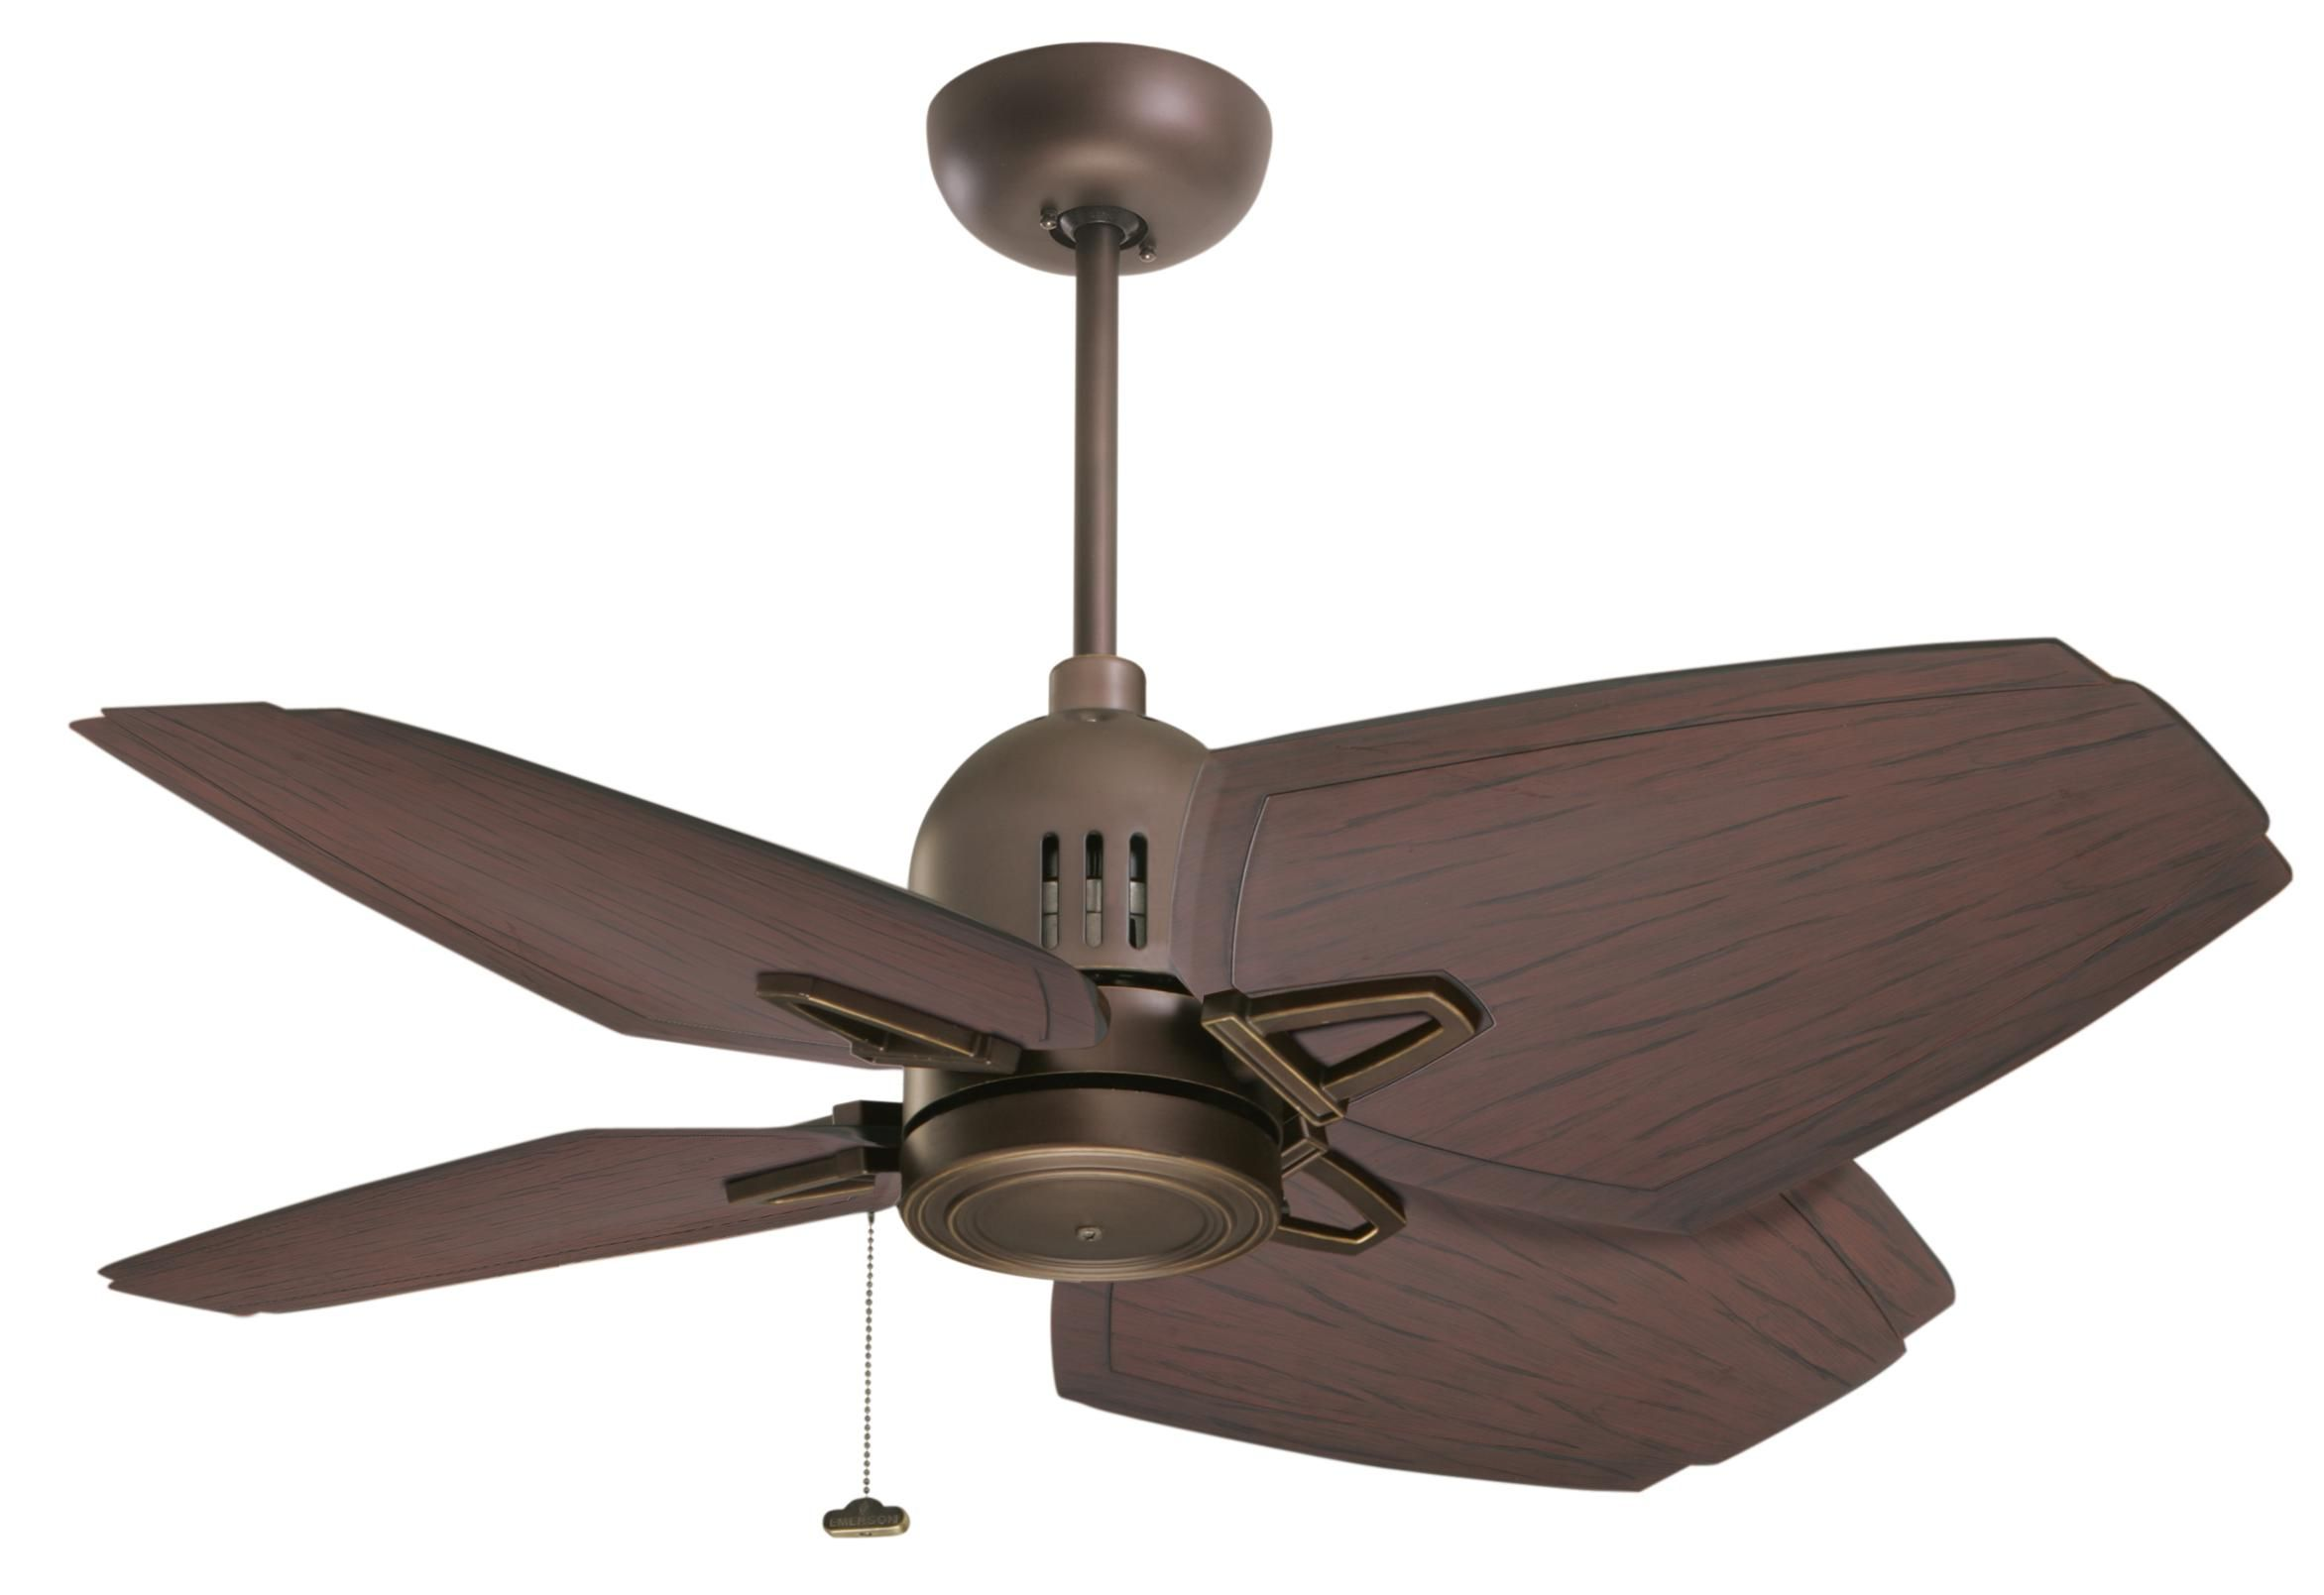 Emerson Camden Cf3600orh B84mbx Airflow Rating 5658 Cfm Cubic Feet Per Minute Transitional Ceiling Fans Emerson Ceiling Fan Outdoor Ceiling Fans High cfm outdoor ceiling fan